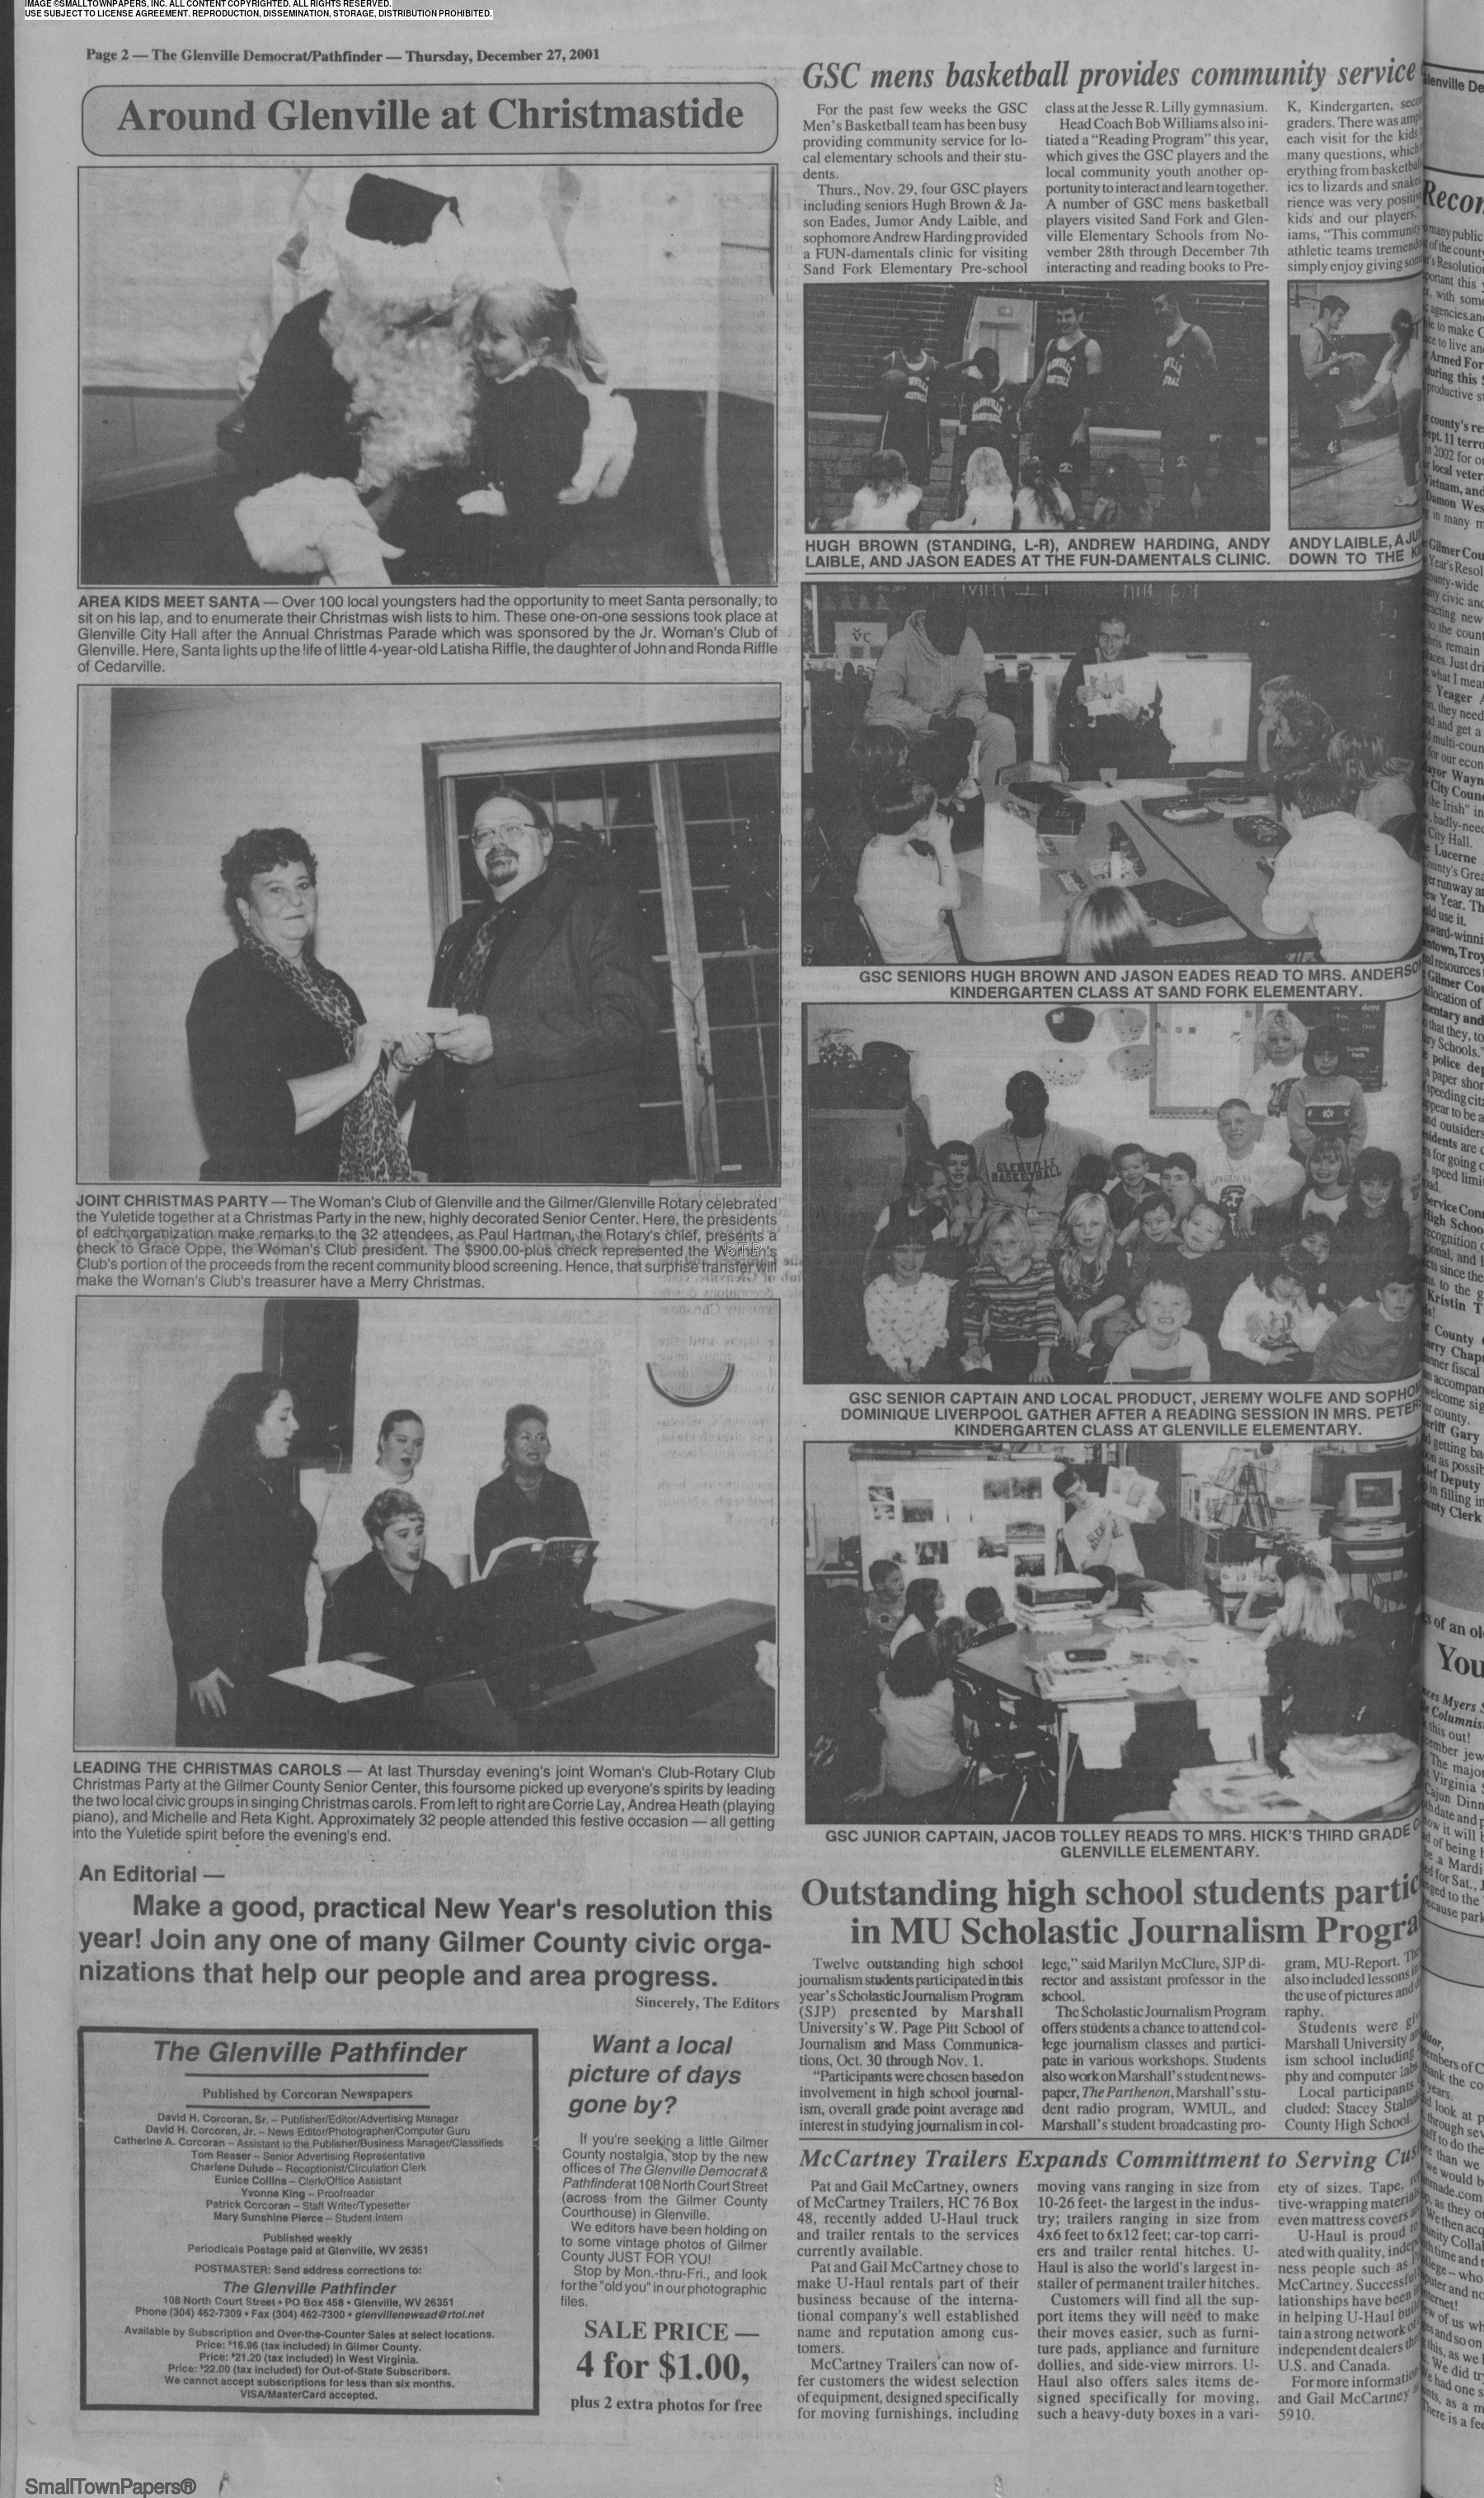 Glenville High School Christmas Party 2020 The Glenville Democrat December 27, 2001: Page 16